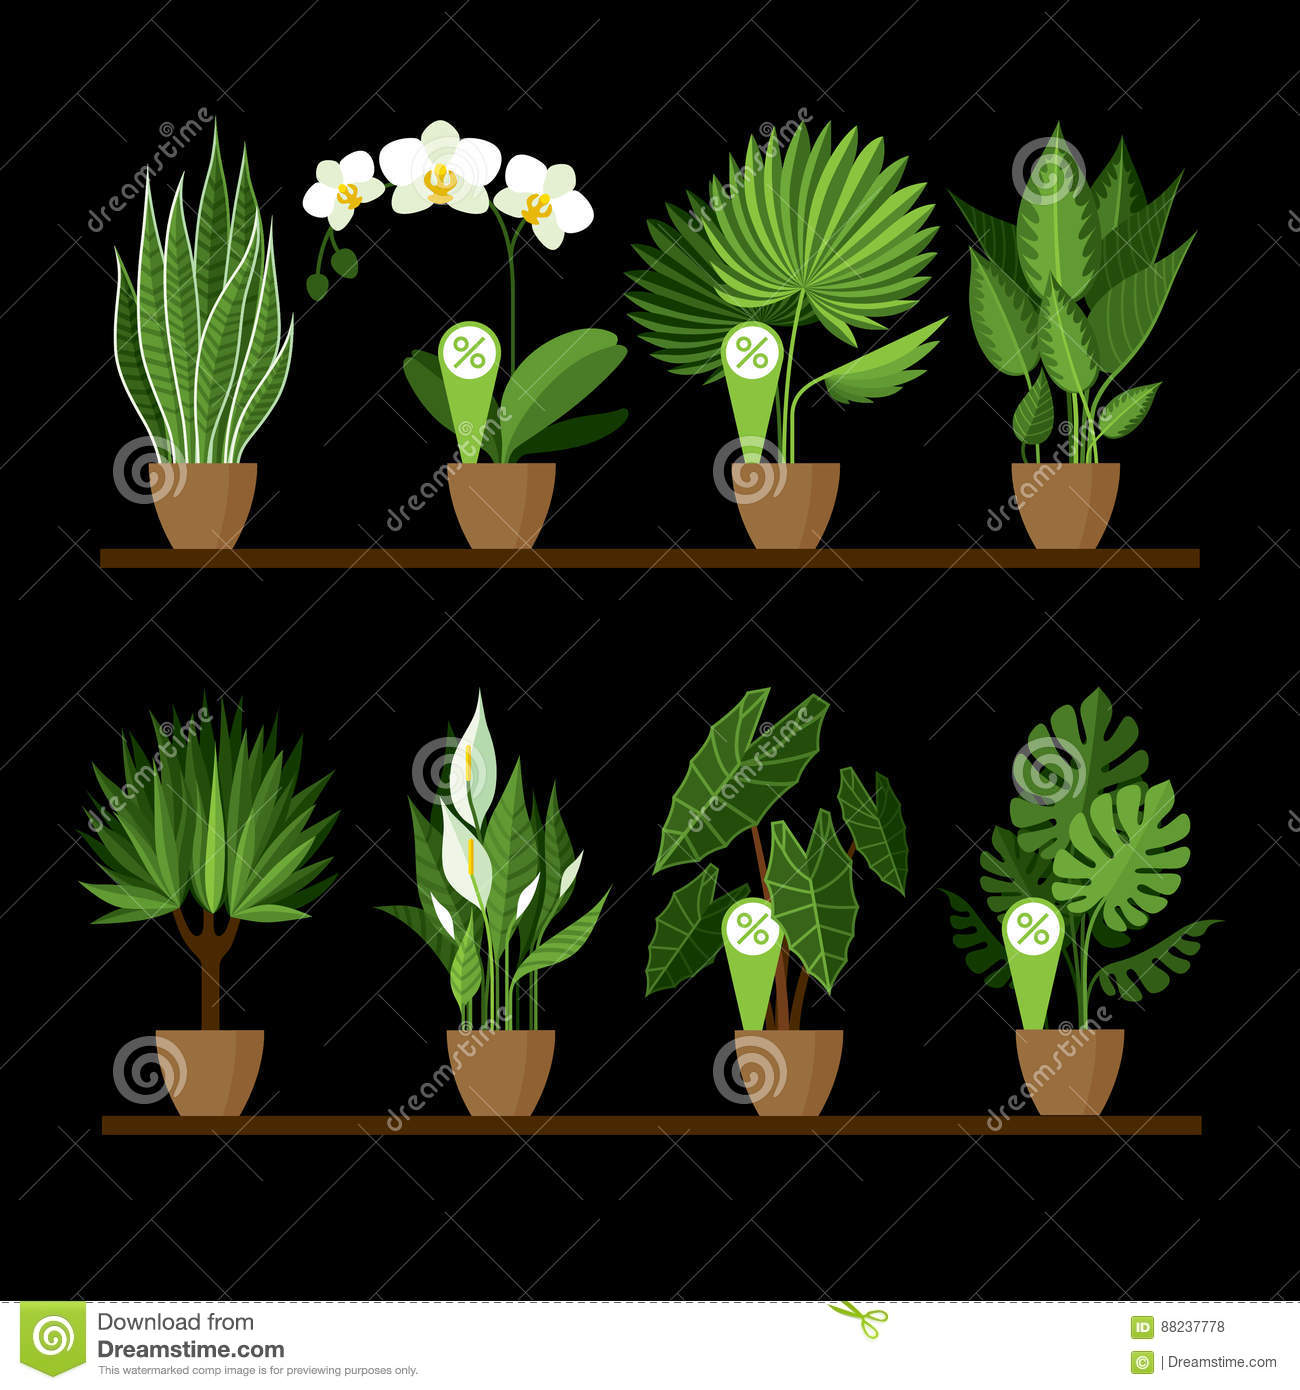 shelf with plants and lanterns royalty free stock photo free candle flame clipart images candle flame clip art free